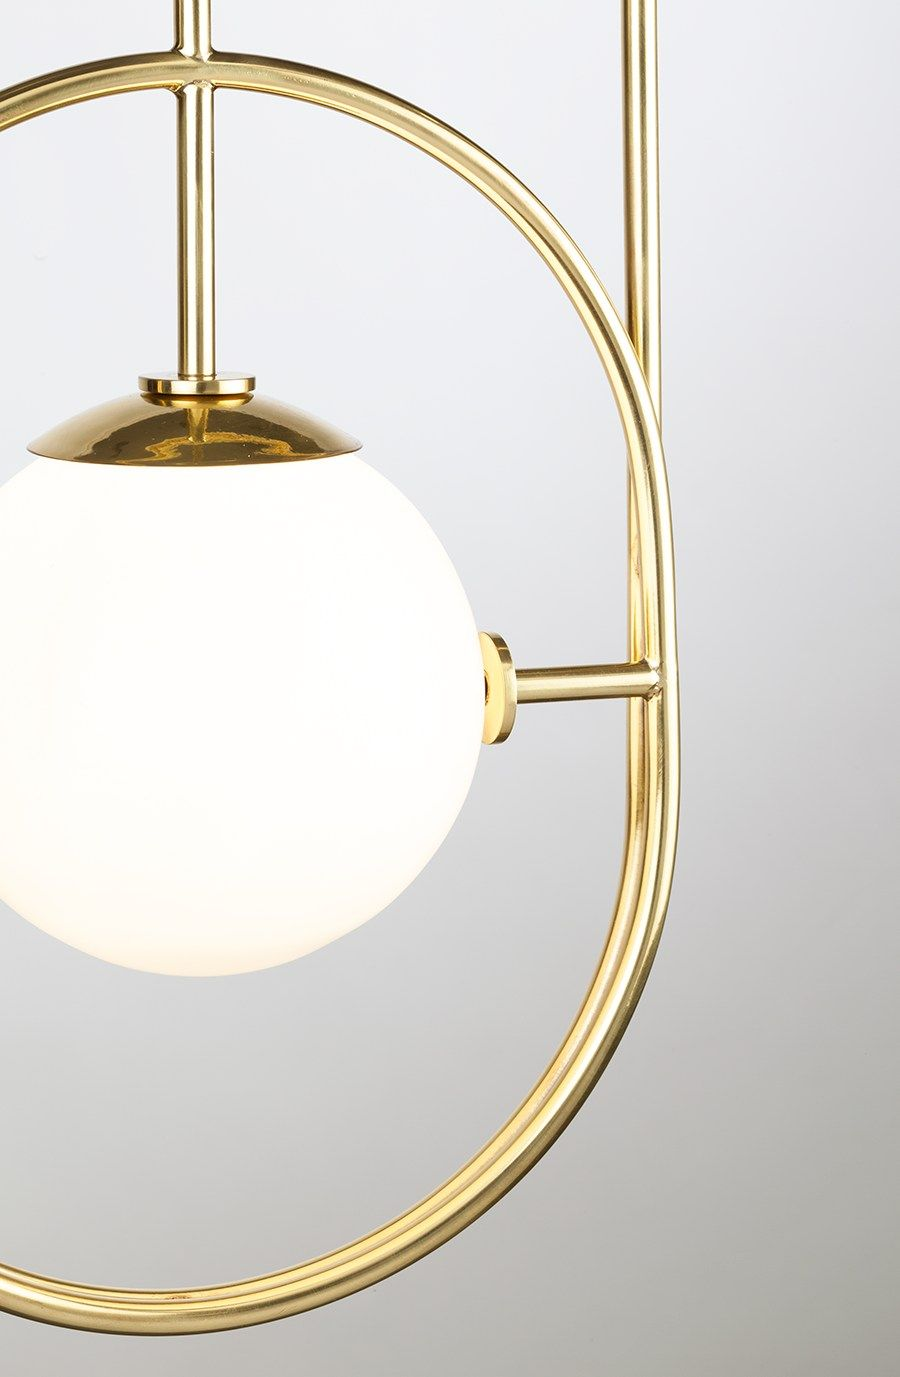 LOOP I | Pendant Lamp By Mambo Unlimited Ideas Design Claudia Melo